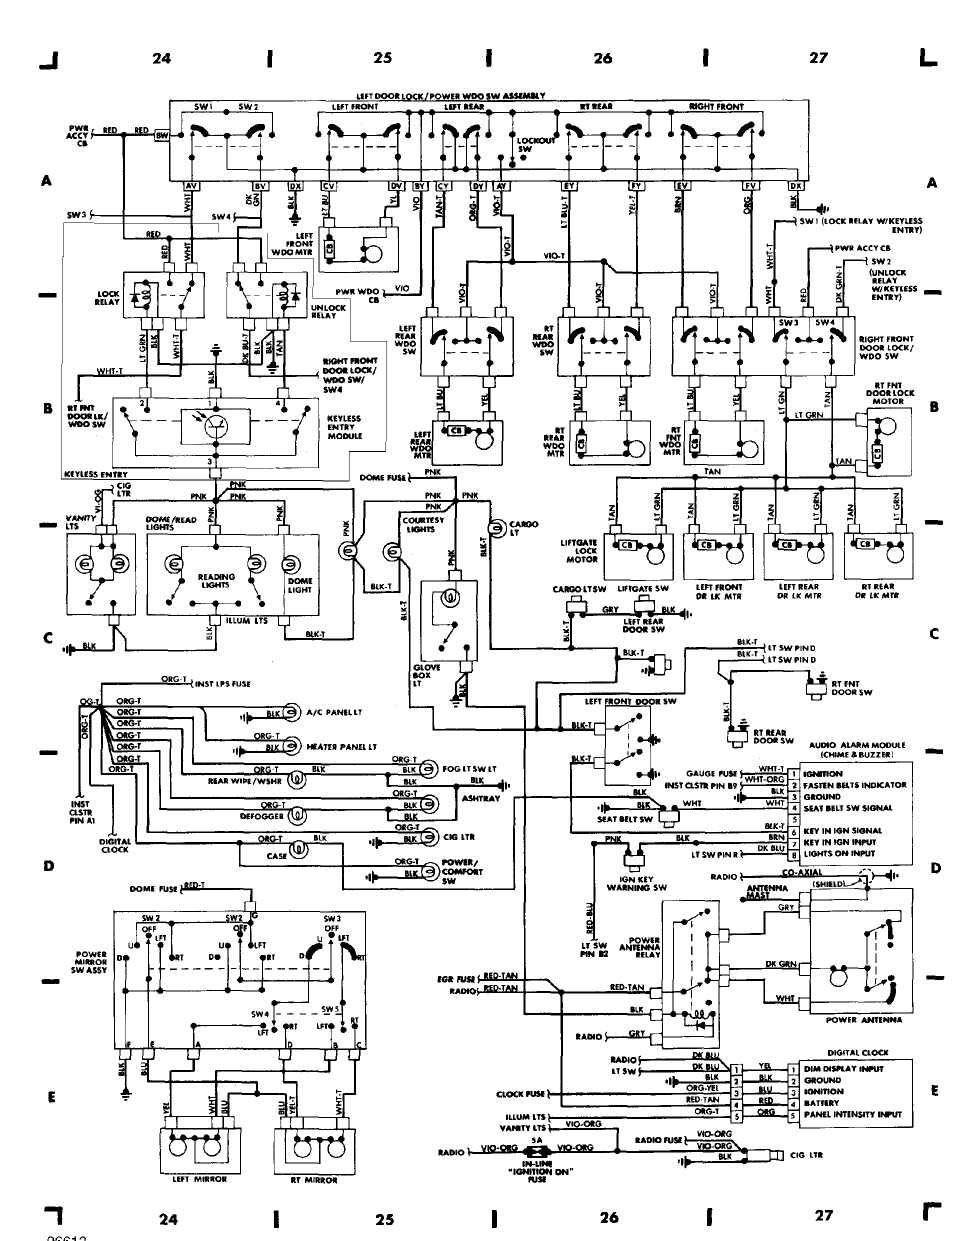 wiring_diagrams_html_61f5e0ad wiring diagrams 1984 1991 jeep cherokee (xj) jeep 2001 jeep grand cherokee laredo fuse box diagram at soozxer.org